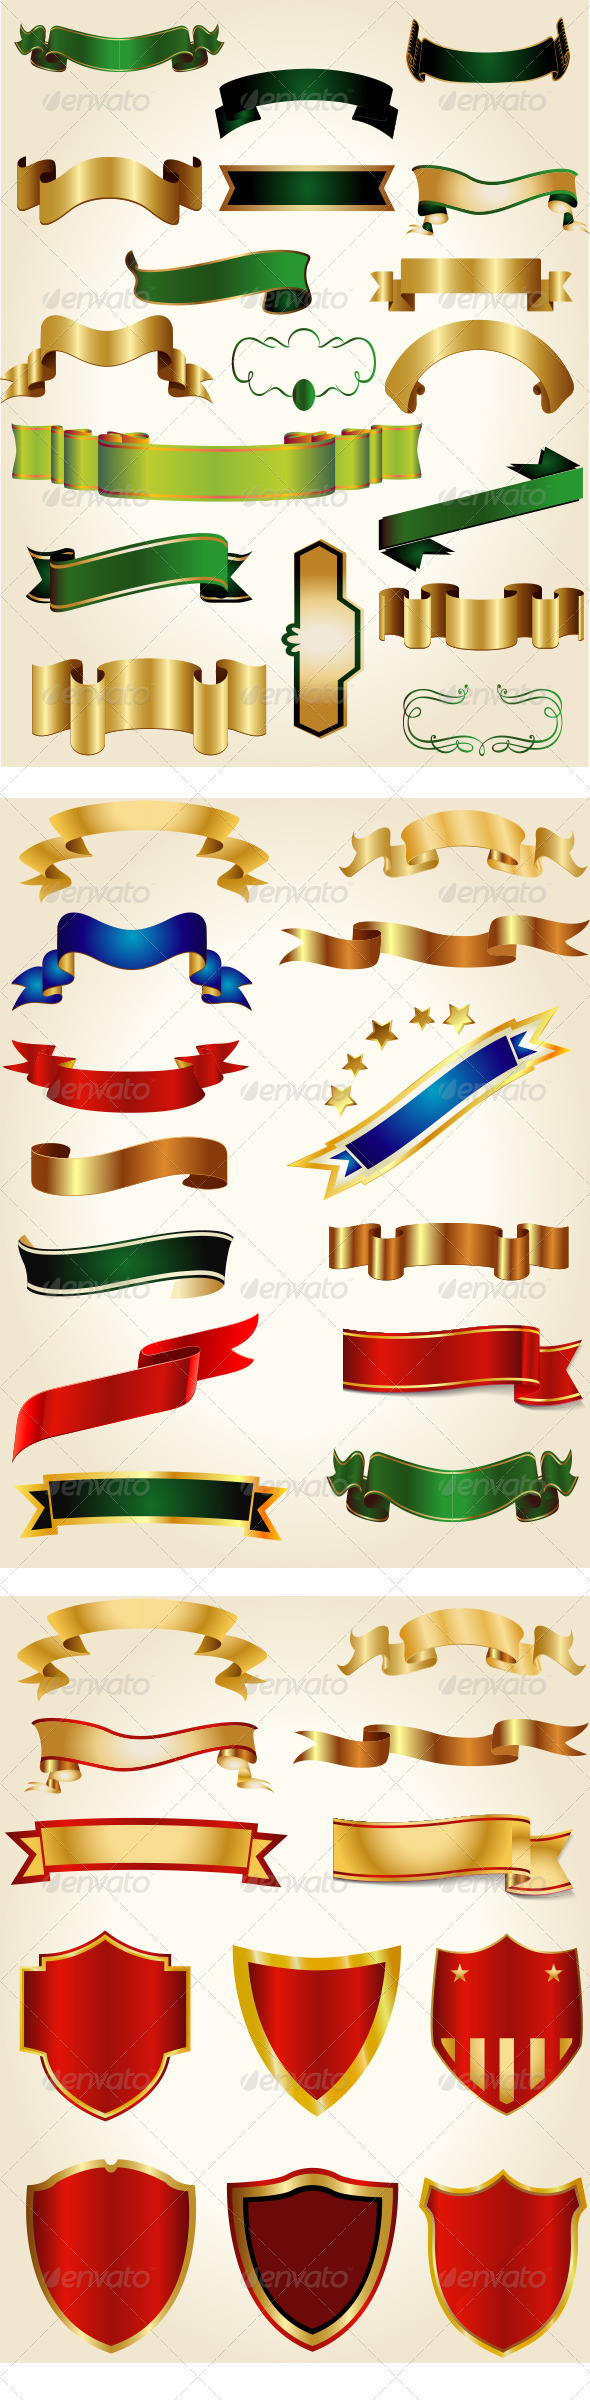 GraphicRiver Ribbon Bundle Collection 7574614